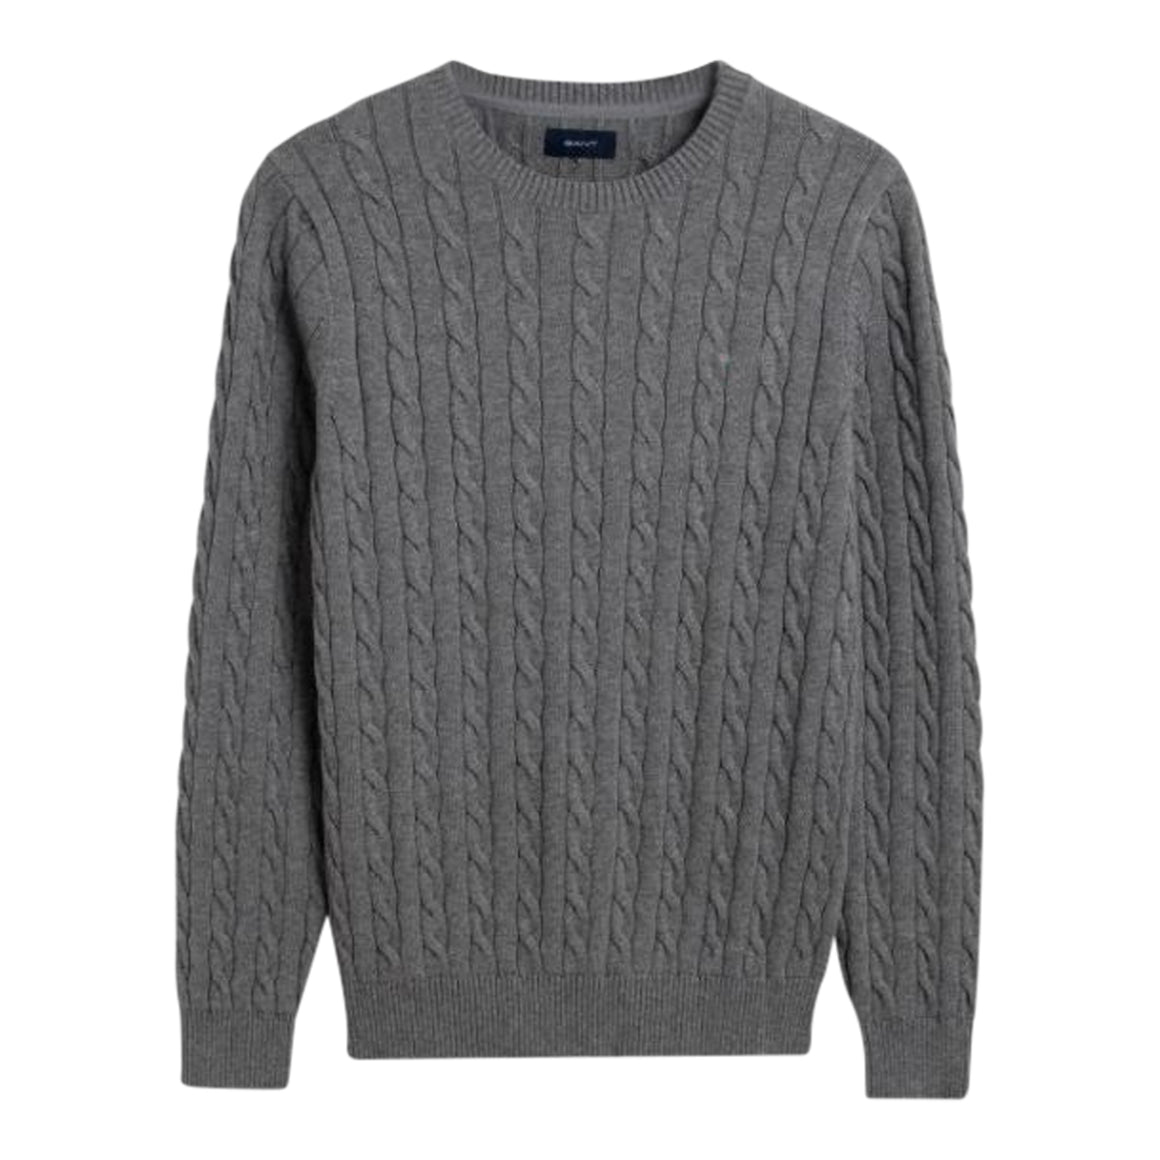 Cotton Cable Crew Neck for Men in Dark Grey Melange